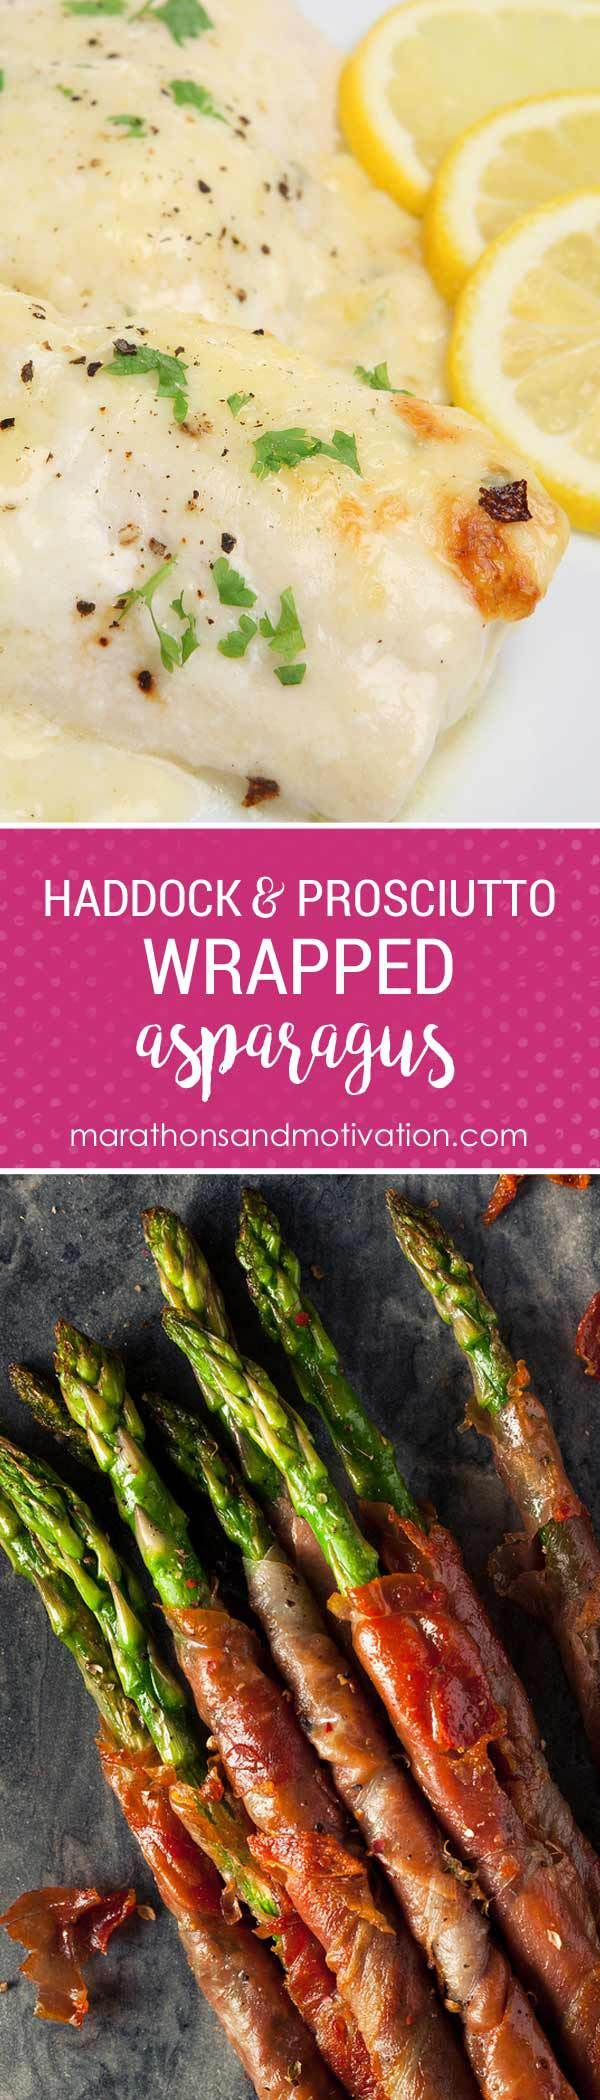 Baked Haddock with Prosciutto Wrapped Asparagus   Healthy Family Meal   Haddock   Asparagus   Prosciutto   Weeknight Dinner   Kid Friendly Meal